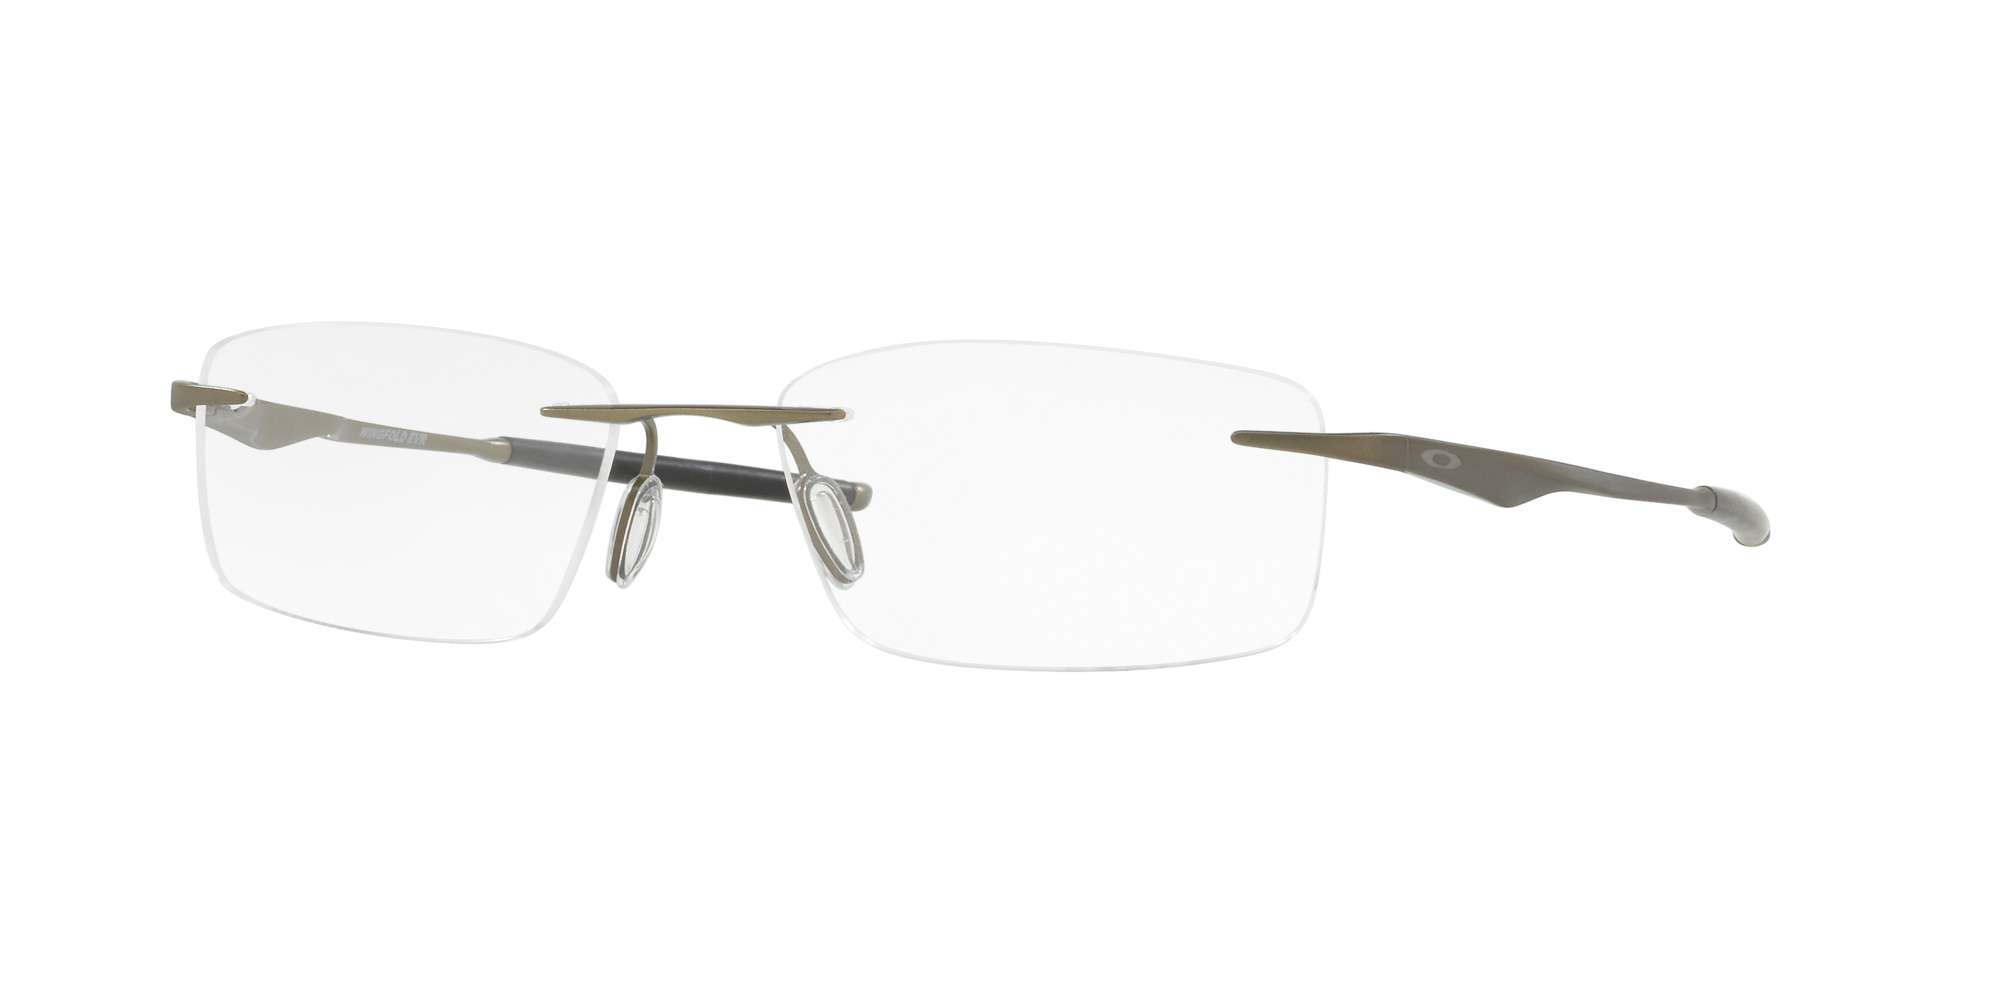 SATIN PEWTER / CLEAR lenses